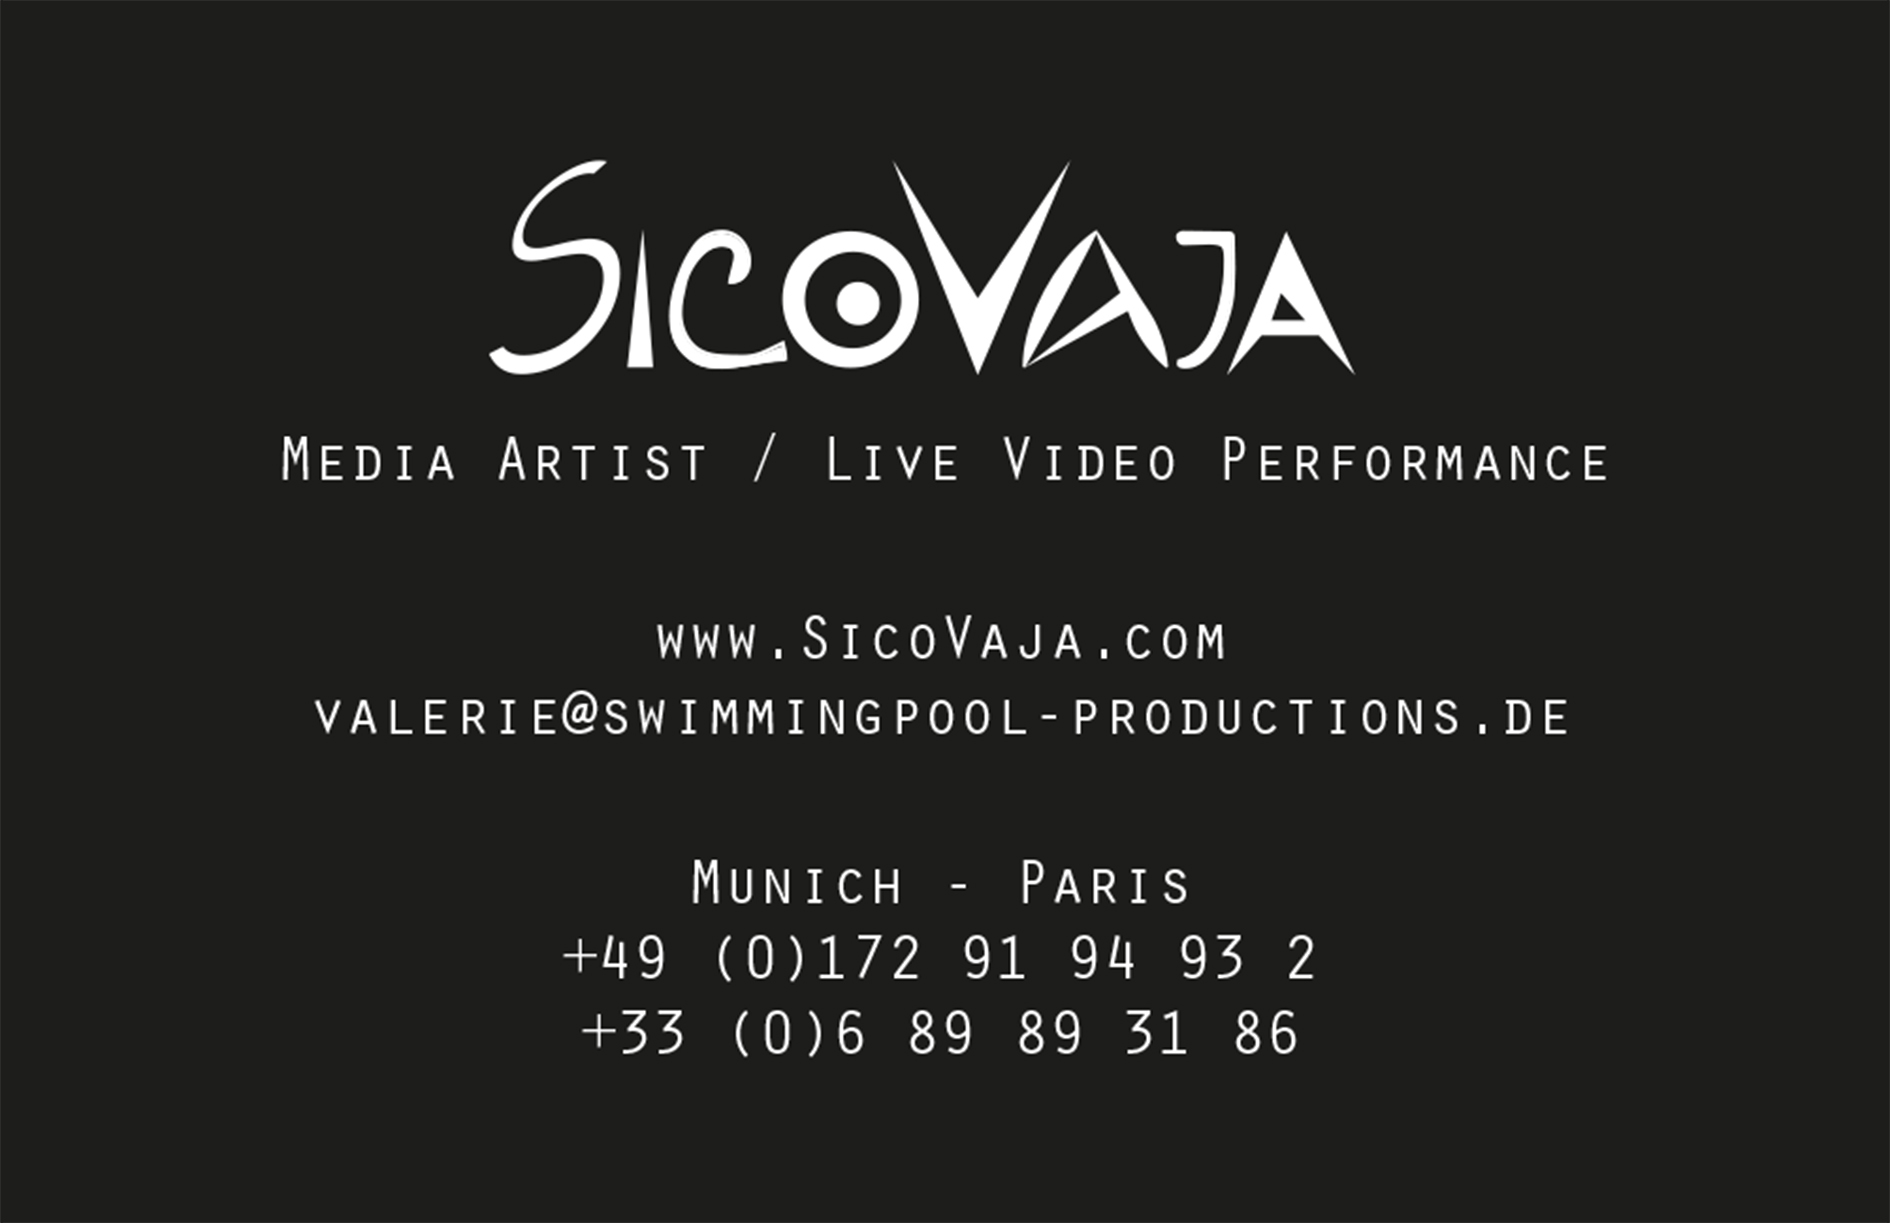 Sicovaja - valerie@swimmingpool-productions.de